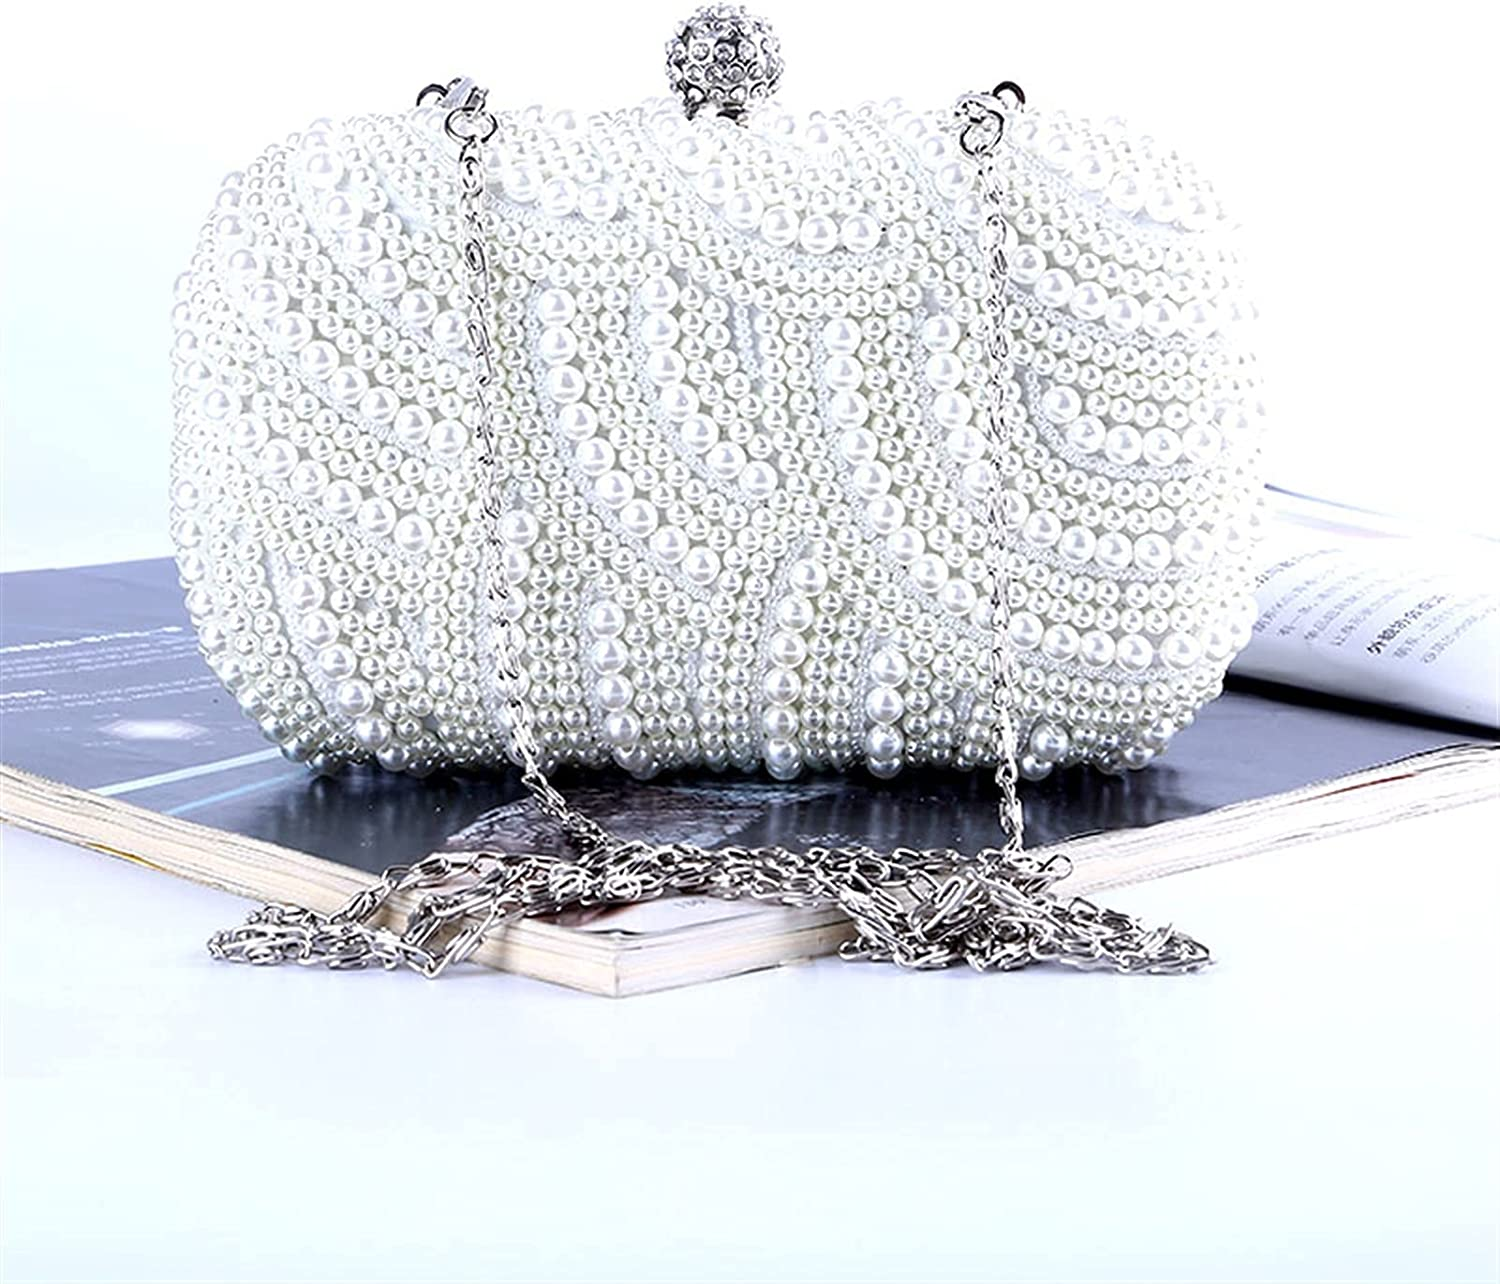 ATHH Pearl Handbags Wedding Clutch Bag Party Purse and Handbag Women's Evening Bag Luxury with Chain Shoulder Party Purse